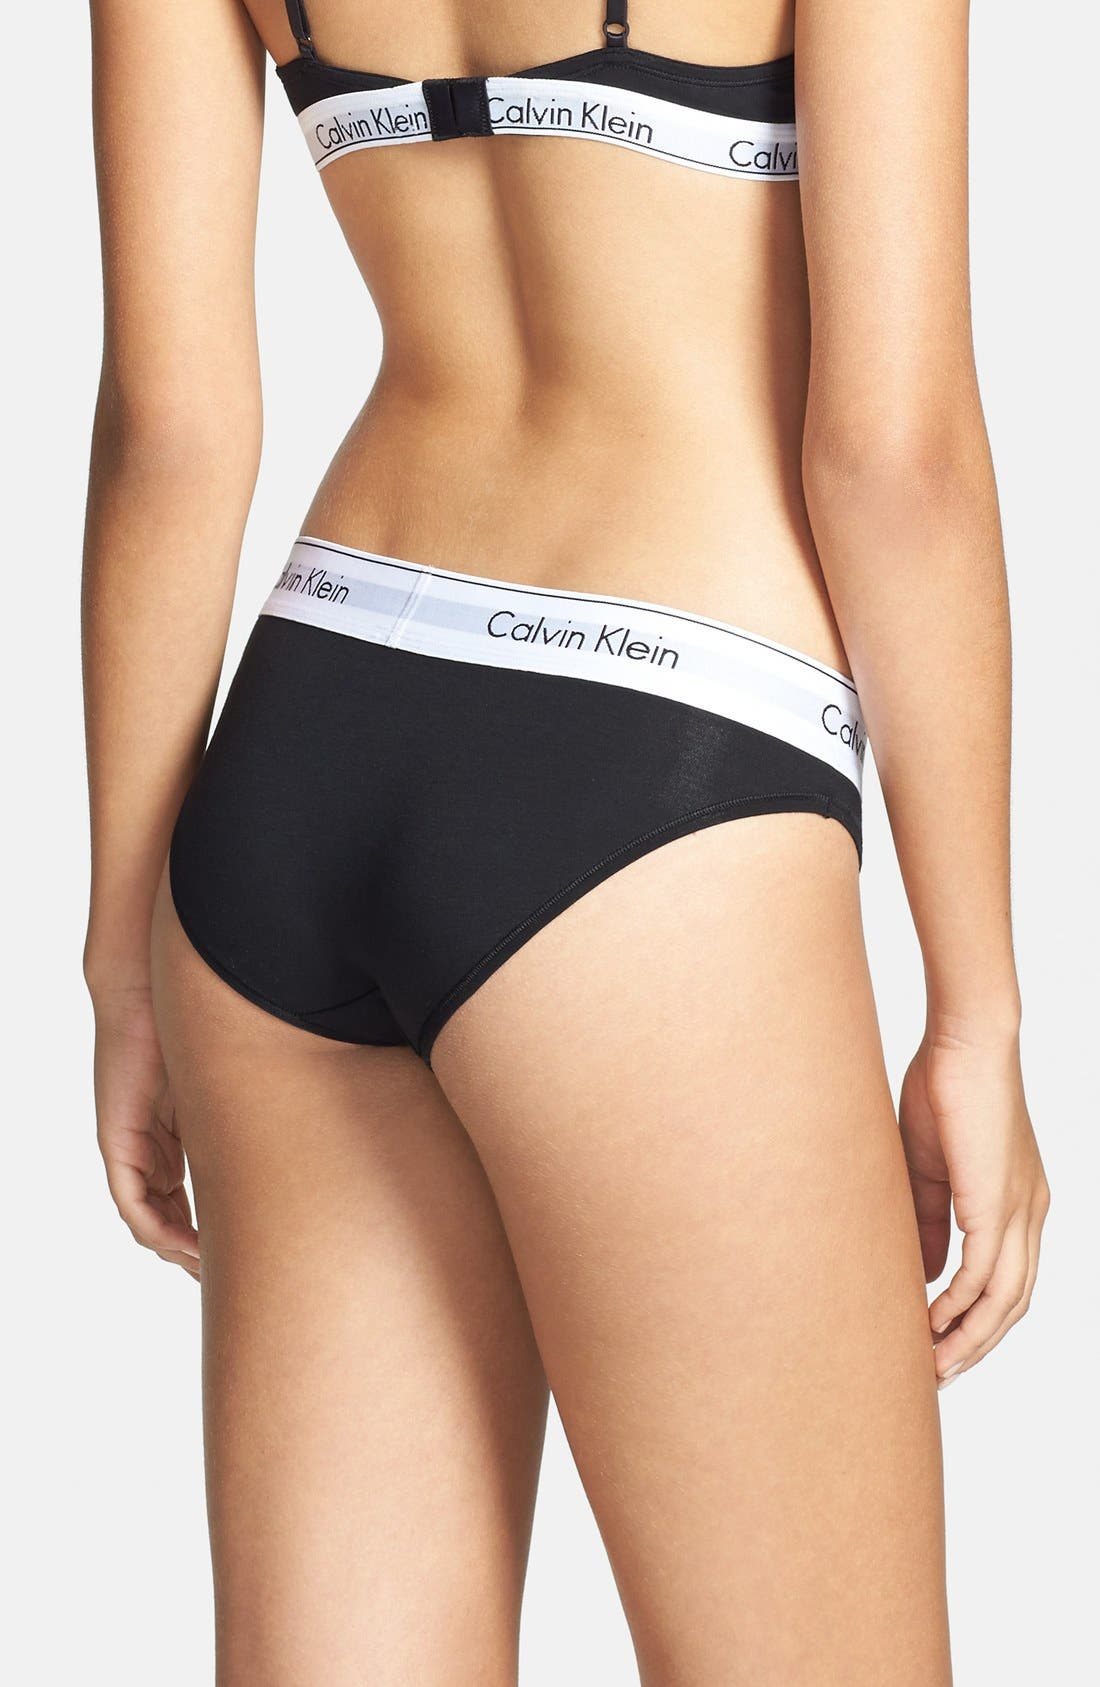 'Modern Cotton Collection' Cotton Blend Bikini,                             Alternate thumbnail 11, color,                             001